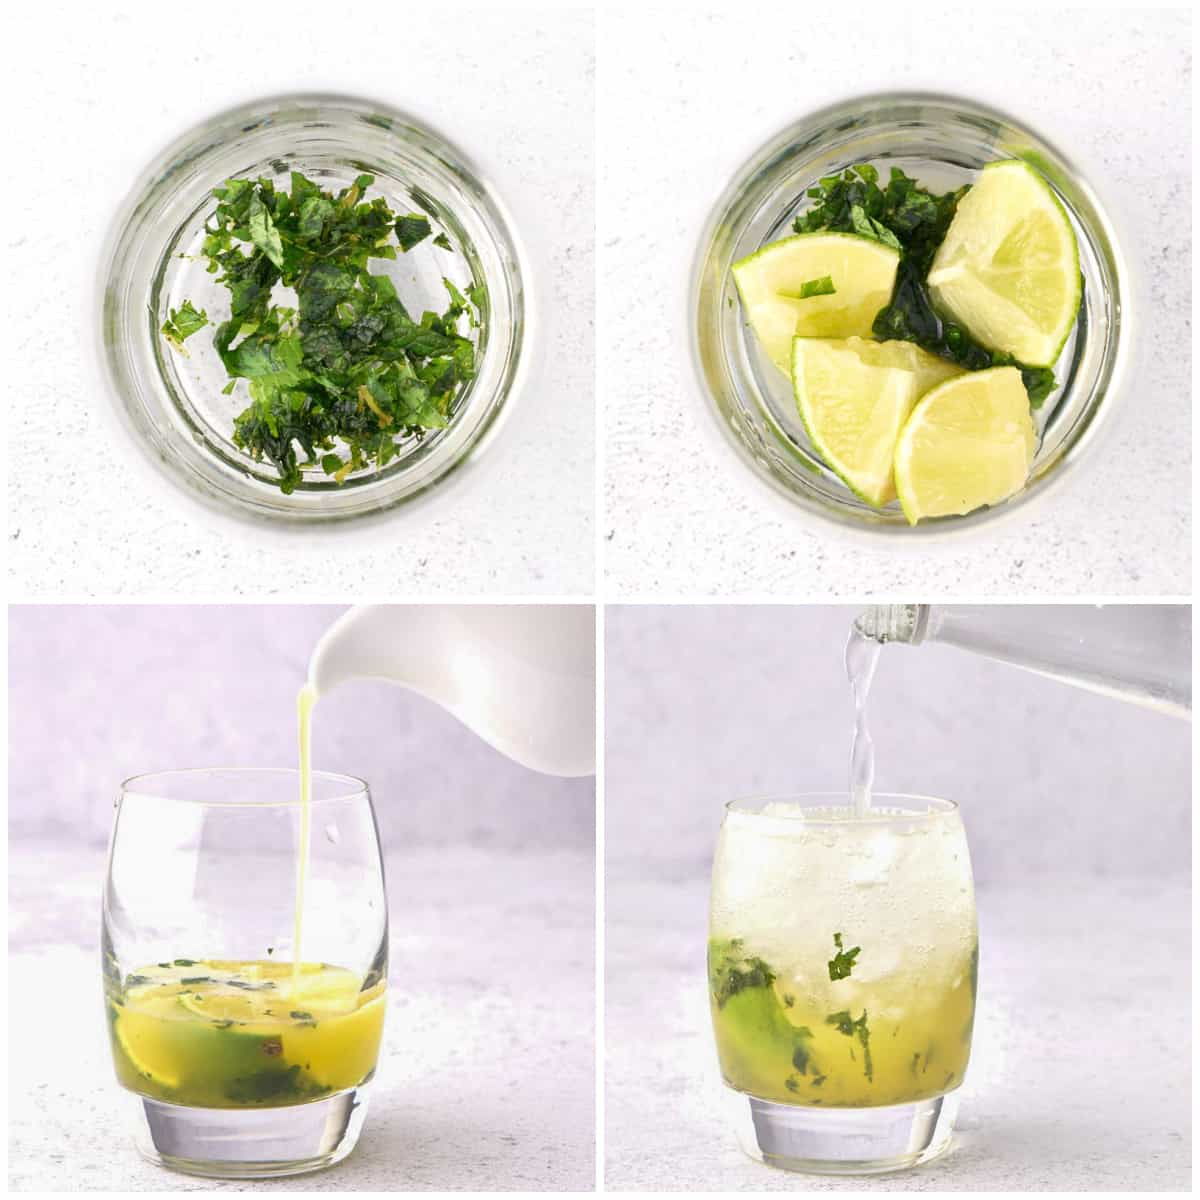 Step by step photos on how to make Pineapple Mojitos